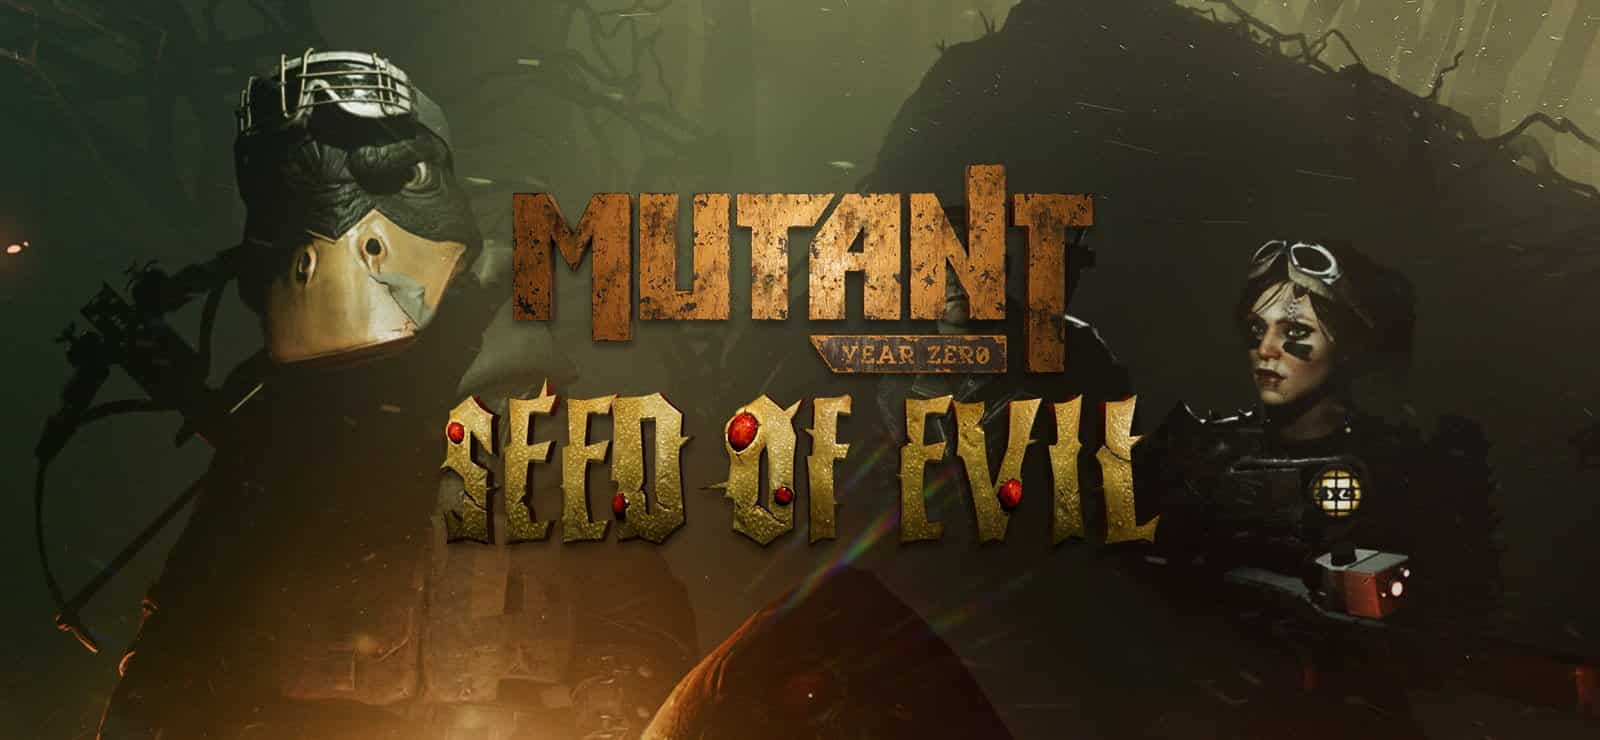 Mutant Year Zero Seed of Evil Xbox One Version Full Game Free Download 2019